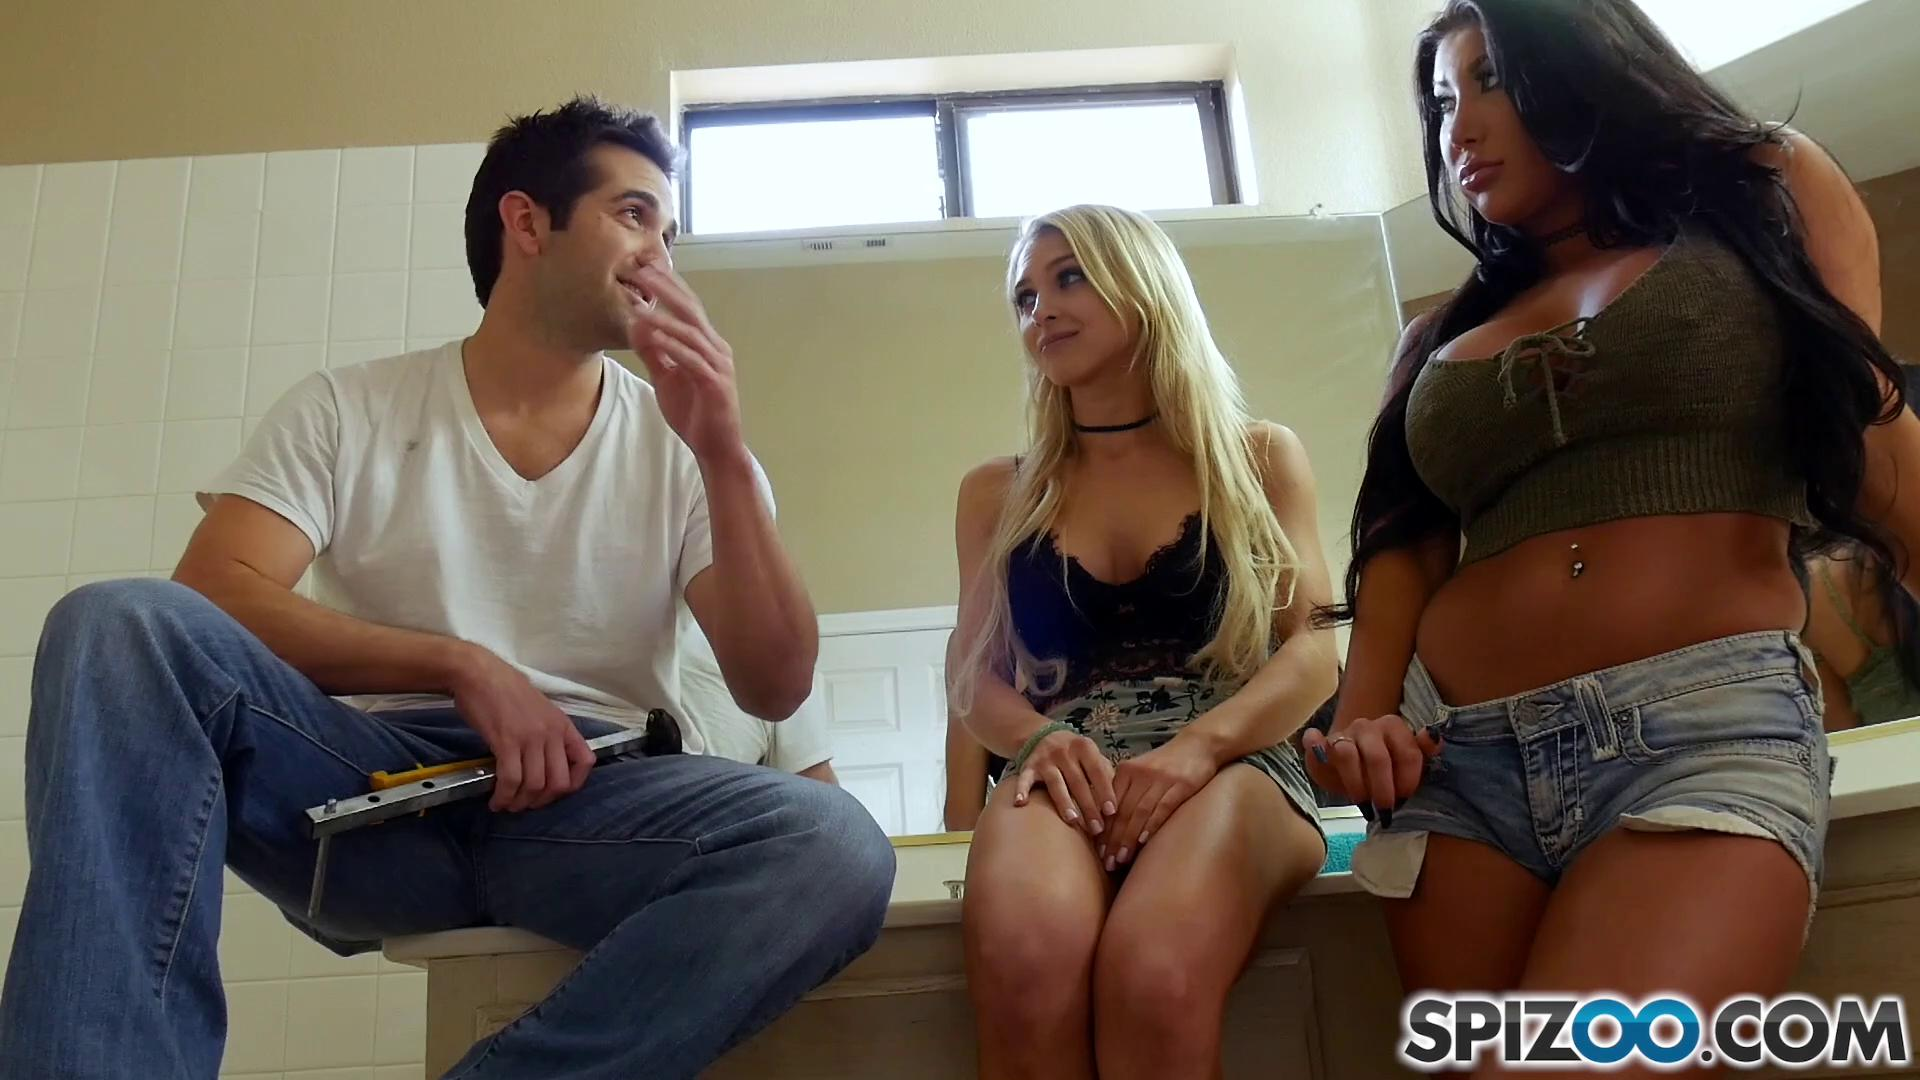 Spizoo – Alix Lynx And August Taylor Donnie Hot Line